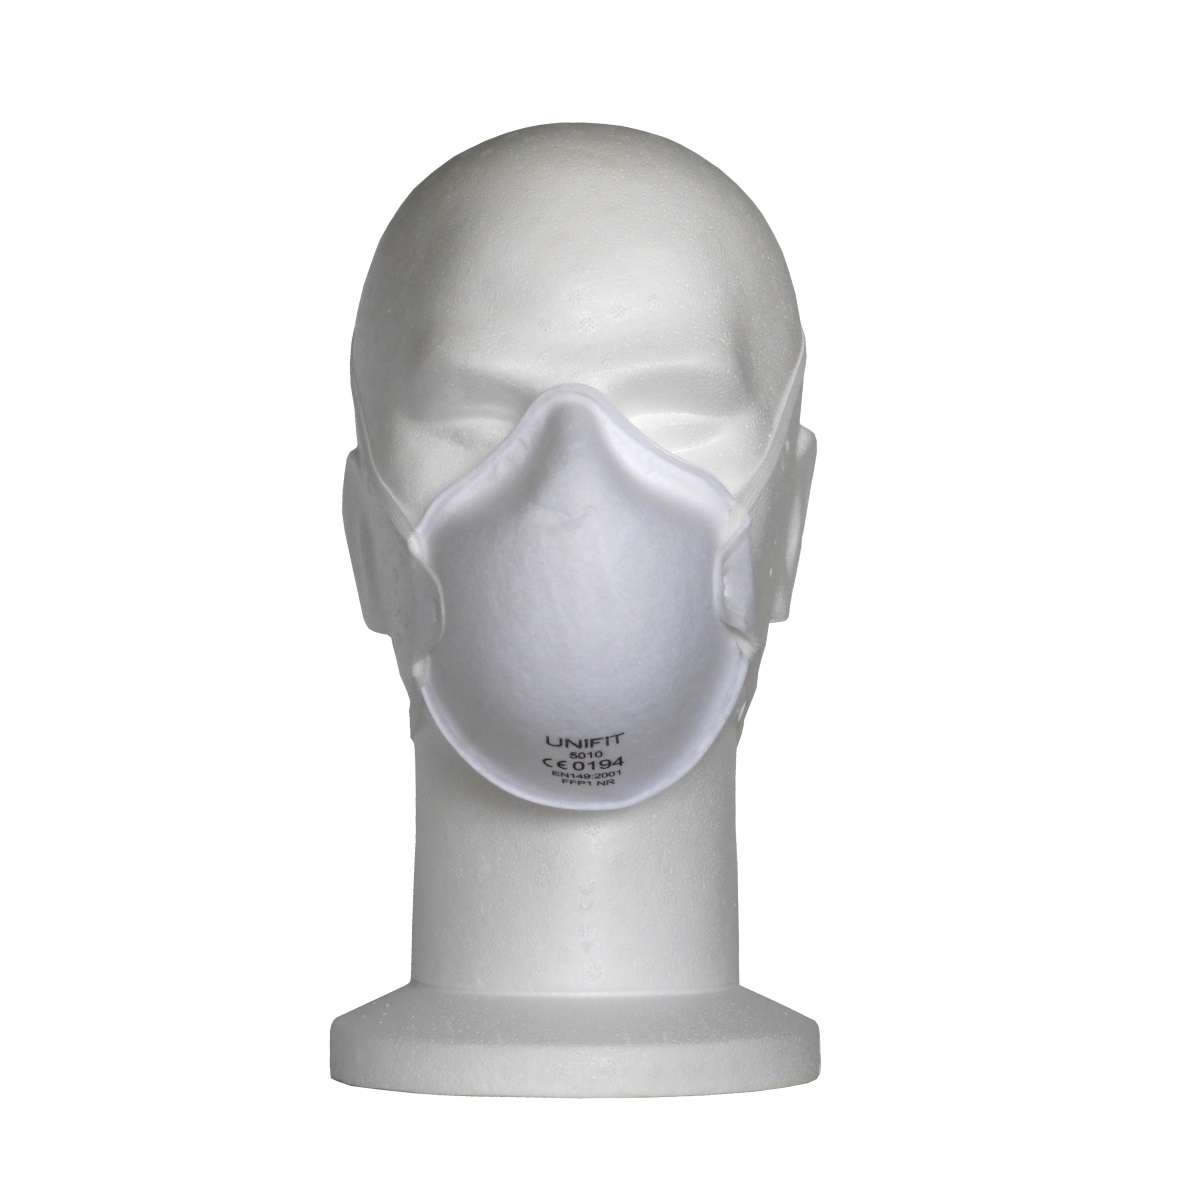 Unifit Cup Mask FFP1 Box of 20